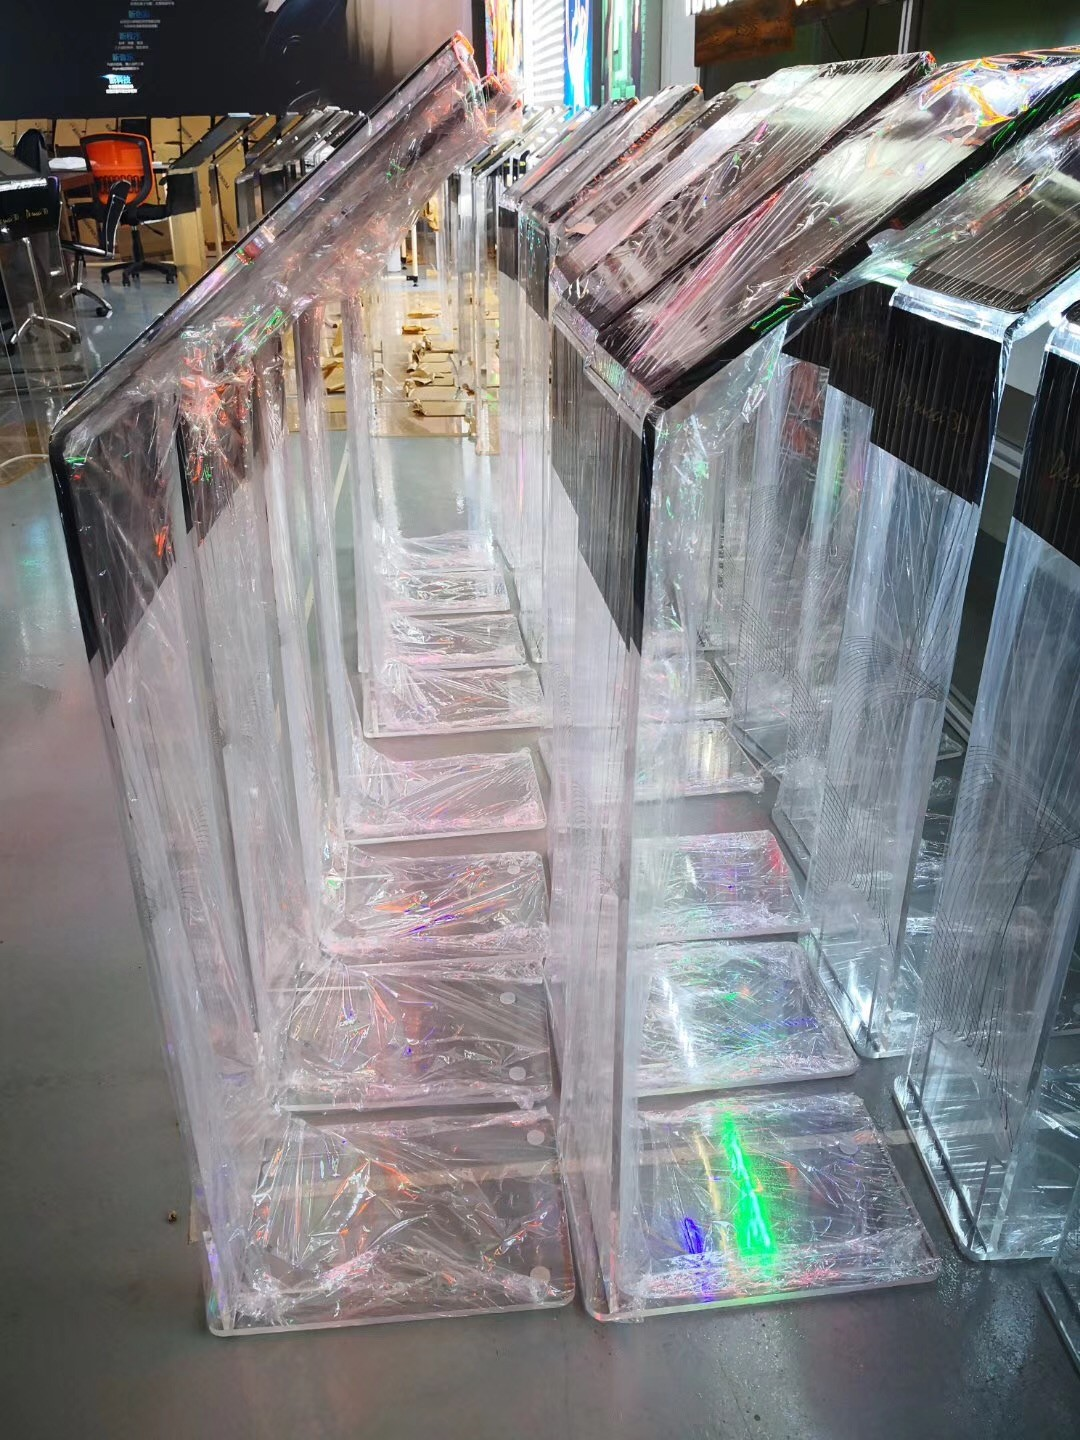 Acrylic Sheet Products Transparent Acrylic Display Manufacturers, Acrylic Sheet Products Transparent Acrylic Display Factory, Supply Acrylic Sheet Products Transparent Acrylic Display